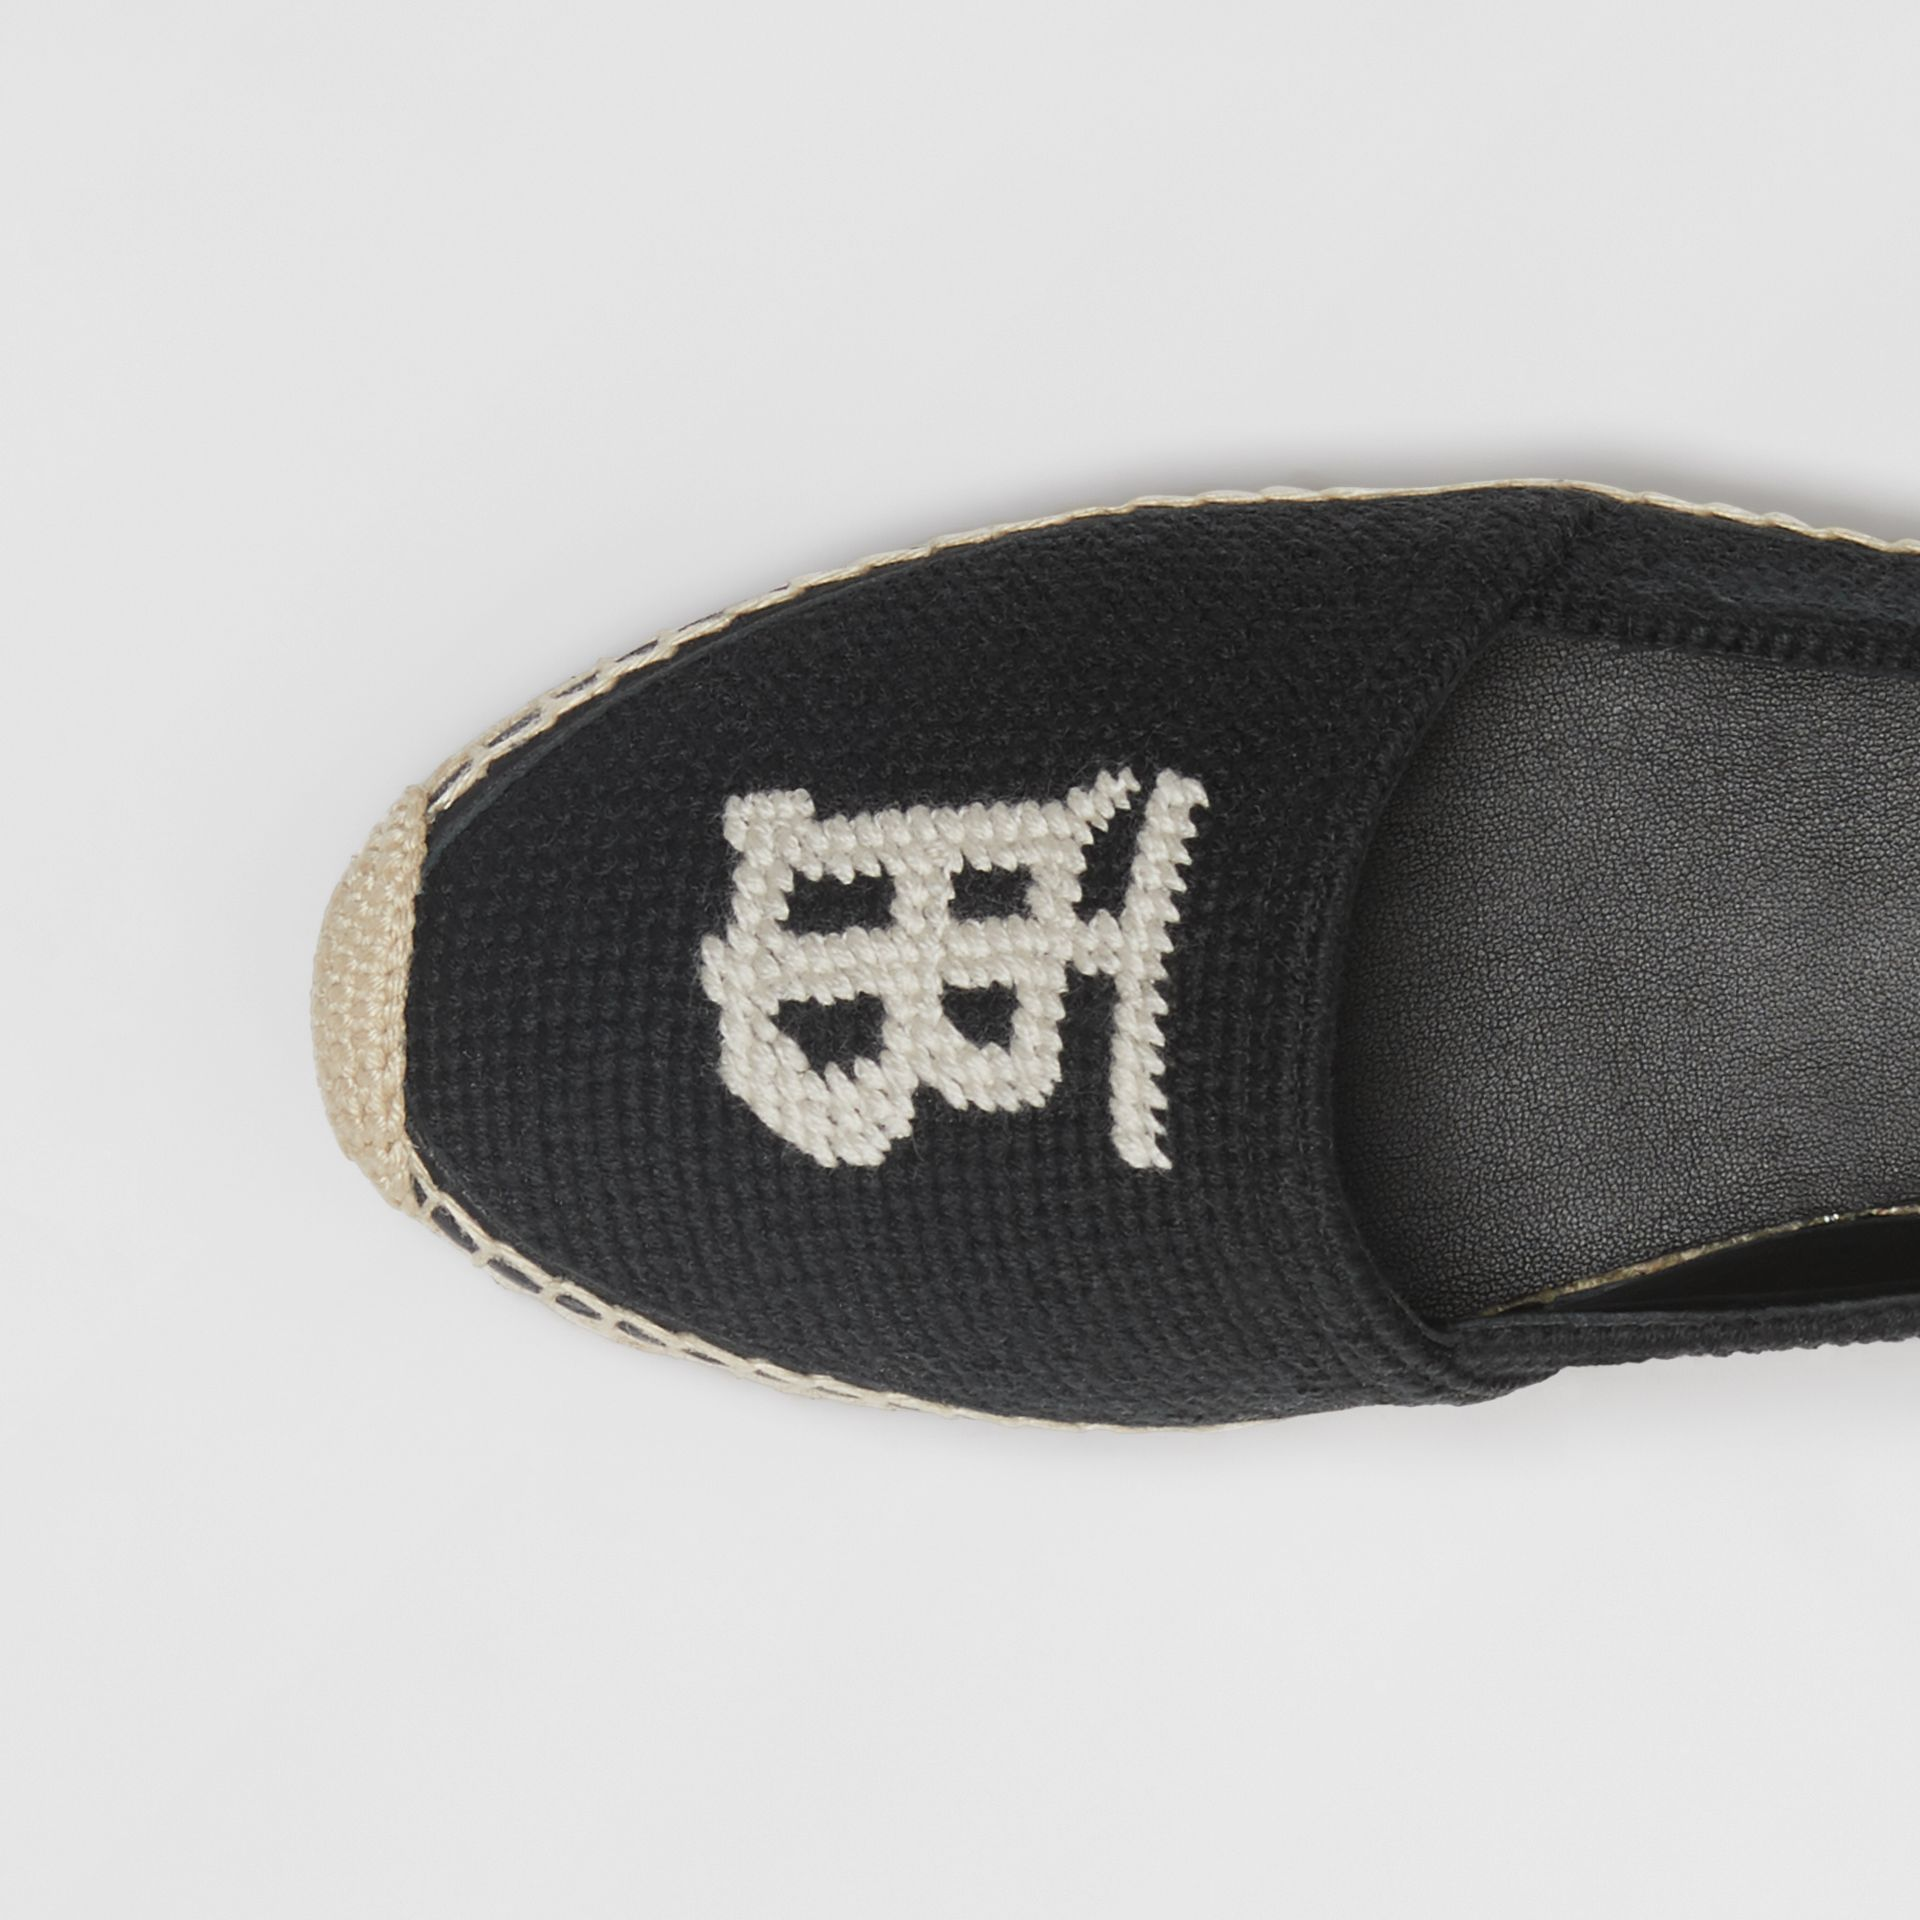 Monogram Motif Cotton and Leather Espadrilles in Black/ecru - Women | Burberry United Kingdom - gallery image 1